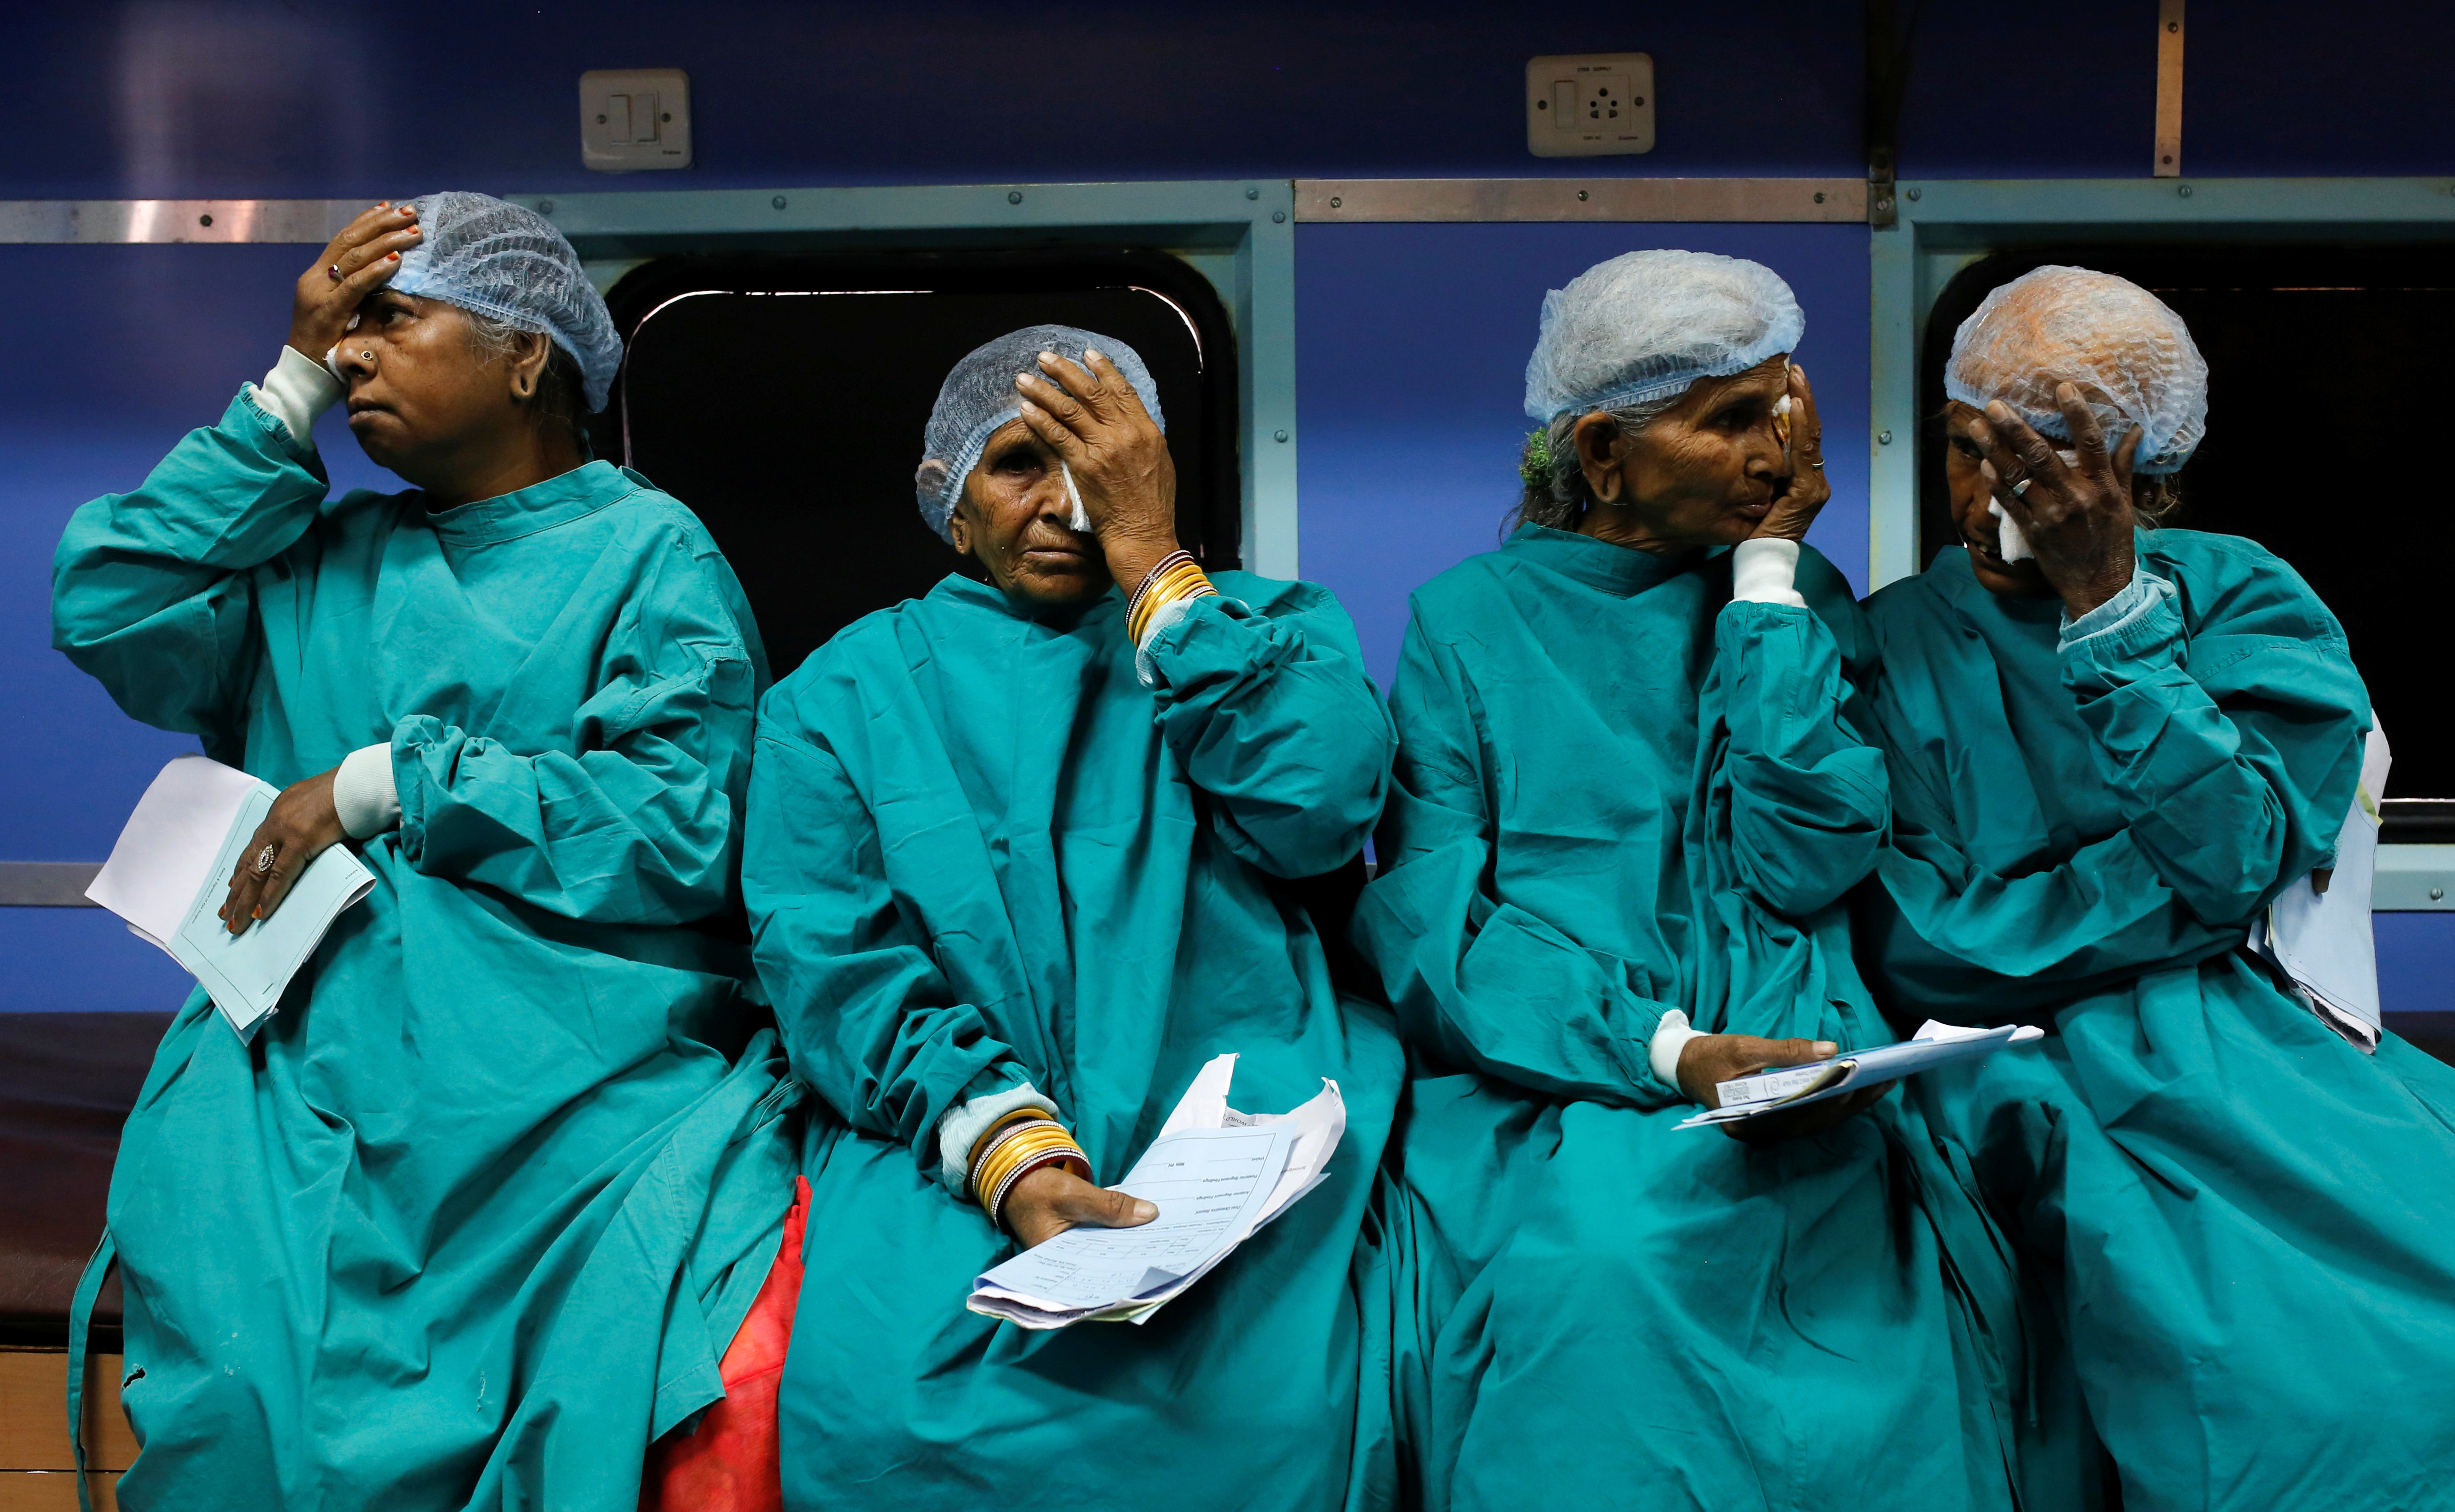 """Patients cover their eyes as they wait before their cataract surgery on the Lifeline Express, a hospital built inside a seven-coach train, at a railway station in Jalore, India, March 31, 2018. REUTERS/Danish Siddiqui      SEARCH """"LIFELINE"""" FOR THIS STORY. SEARCH """"WIDER IMAGE"""" FOR ALL STORIES. TPX IMAGES OF THE DAY - RC13F252F8E0"""